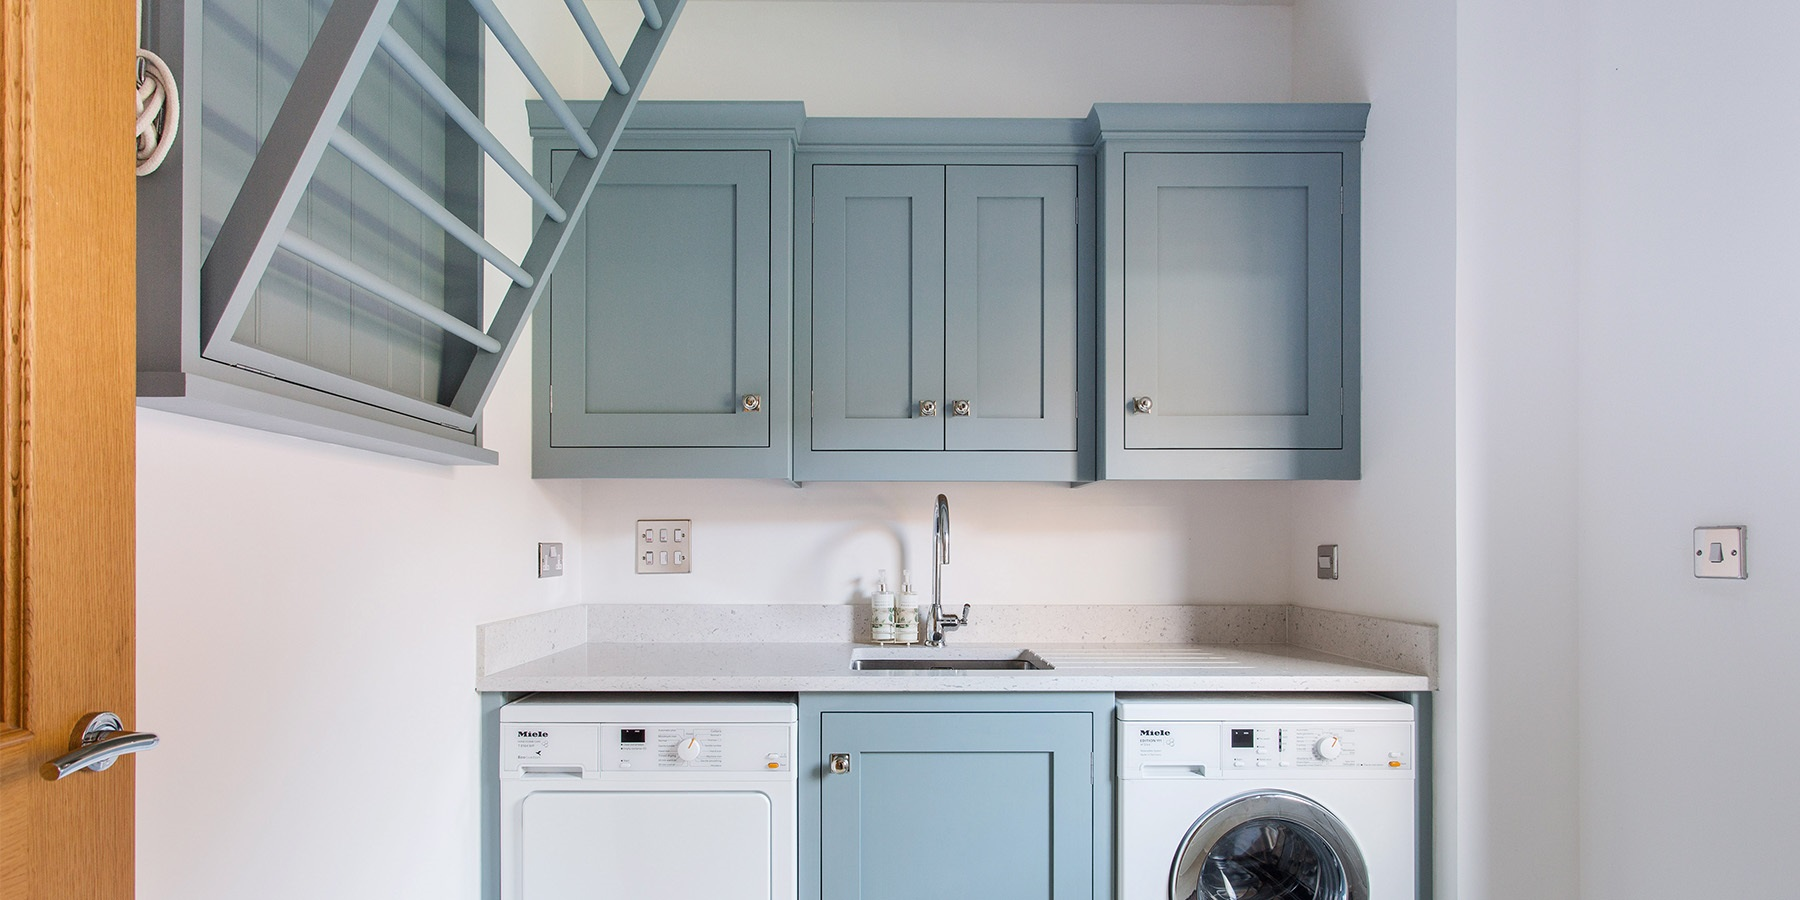 Handmade Utility Room Furniture  - Burlanes bespoke utility room furniture with sheila maid and storage solutions.